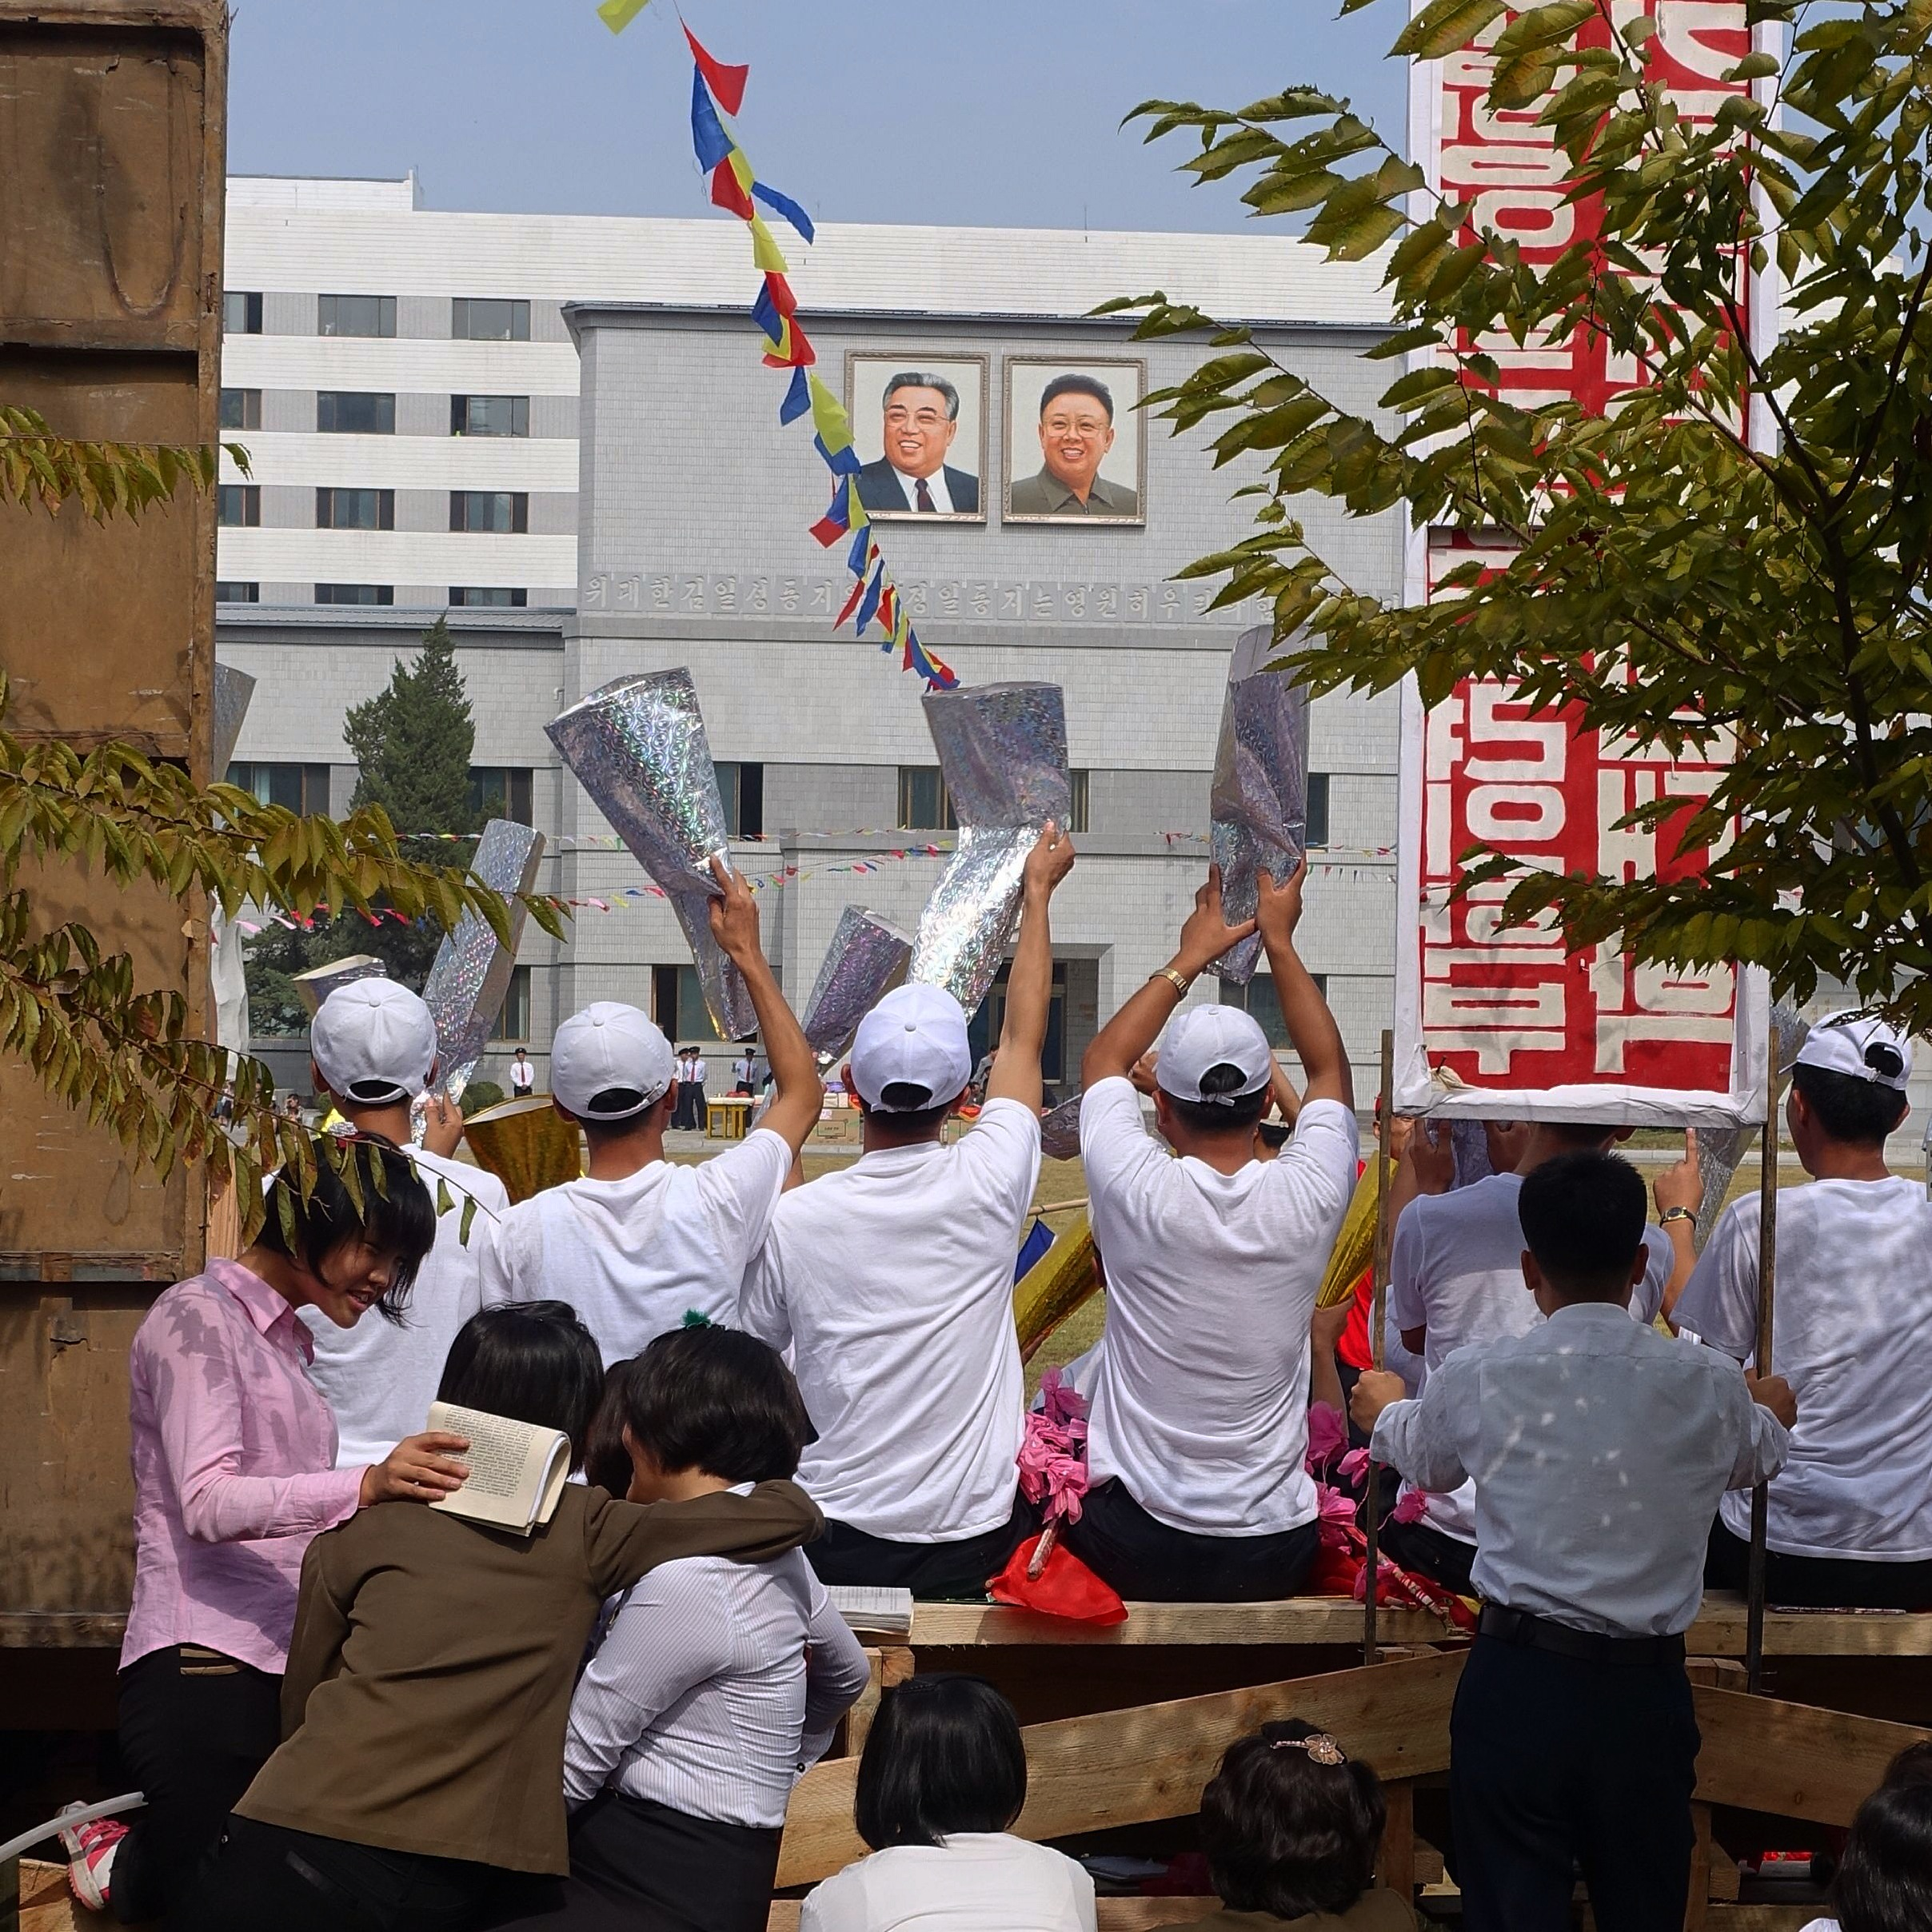 Students of Pyongyang Medical College perform a cheer at their annual sports festival.